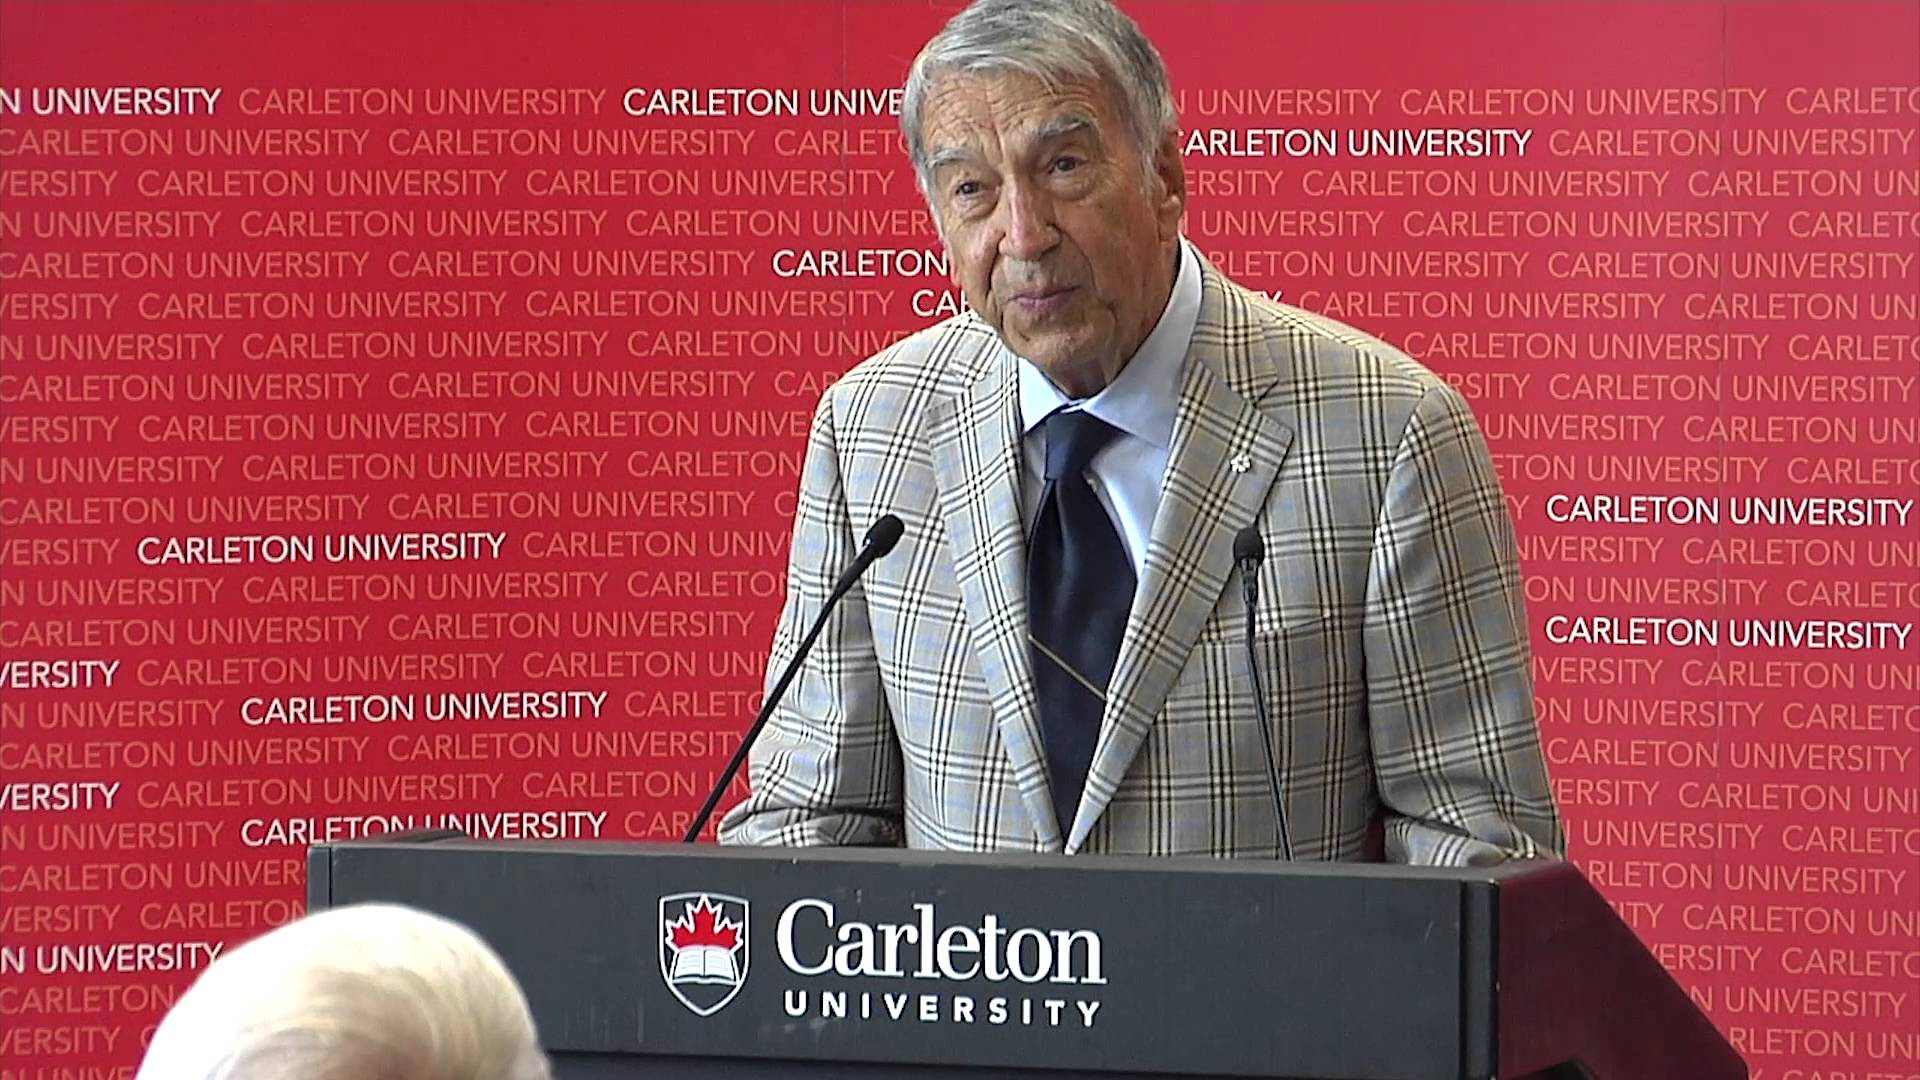 Watch Video: Carleton University Announces $10-Million Gift for New Business School Building